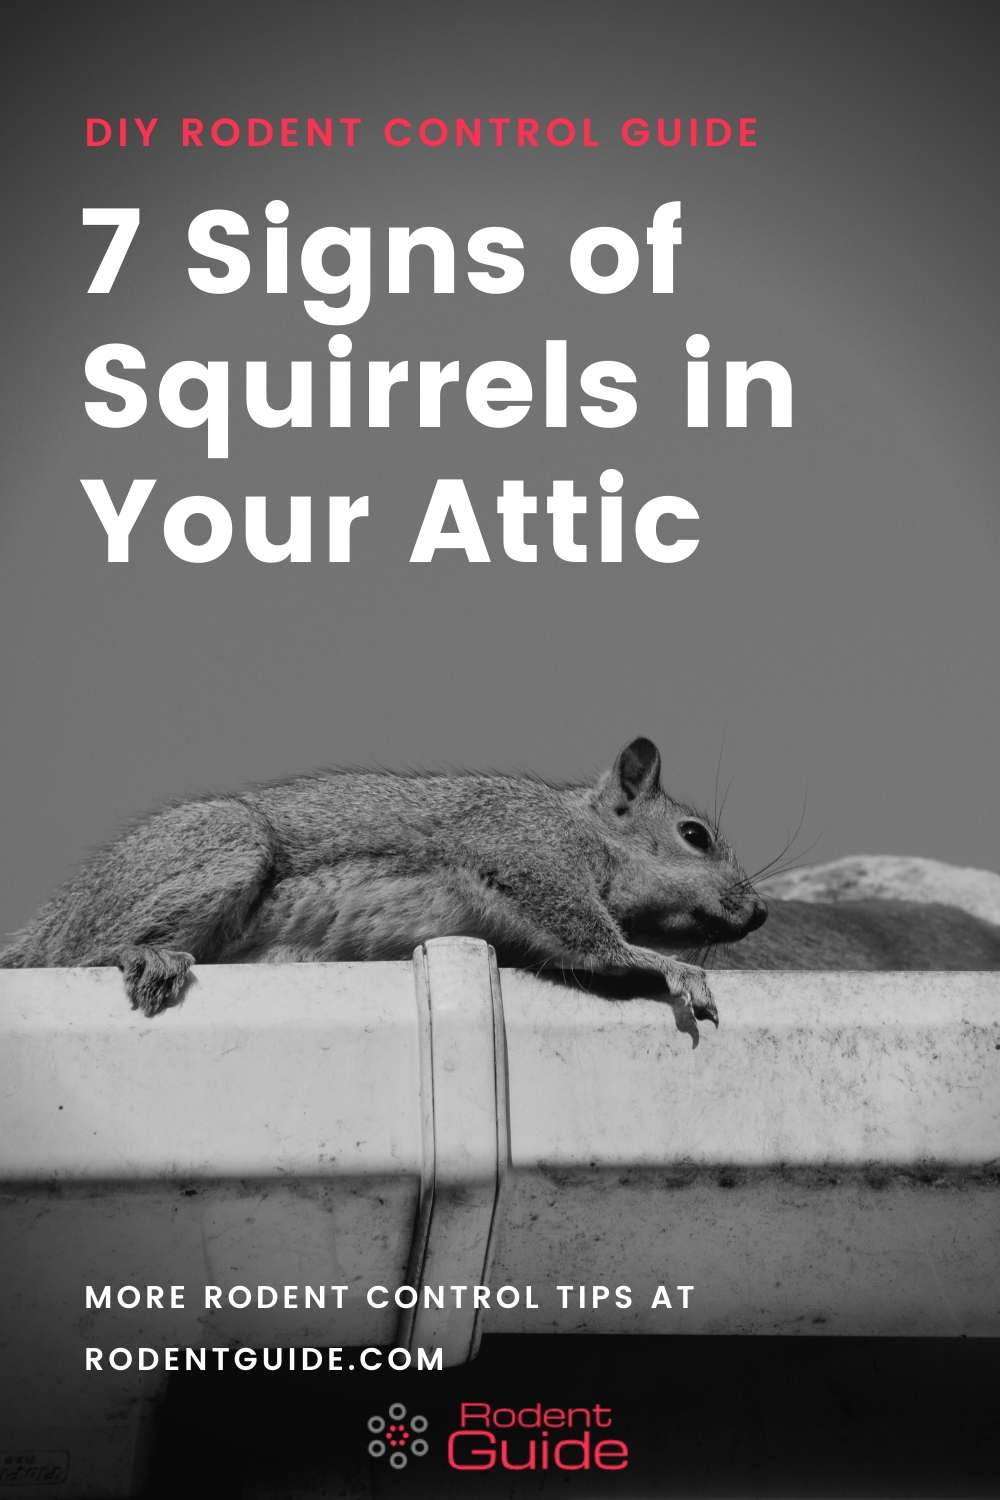 7 Signs of Squirrels in Your Attic